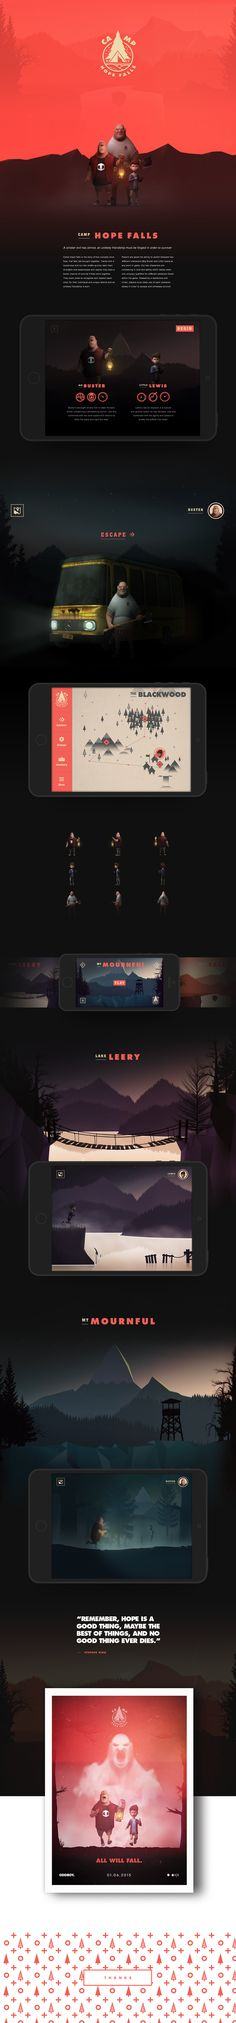 Benjamin Markby on Behance